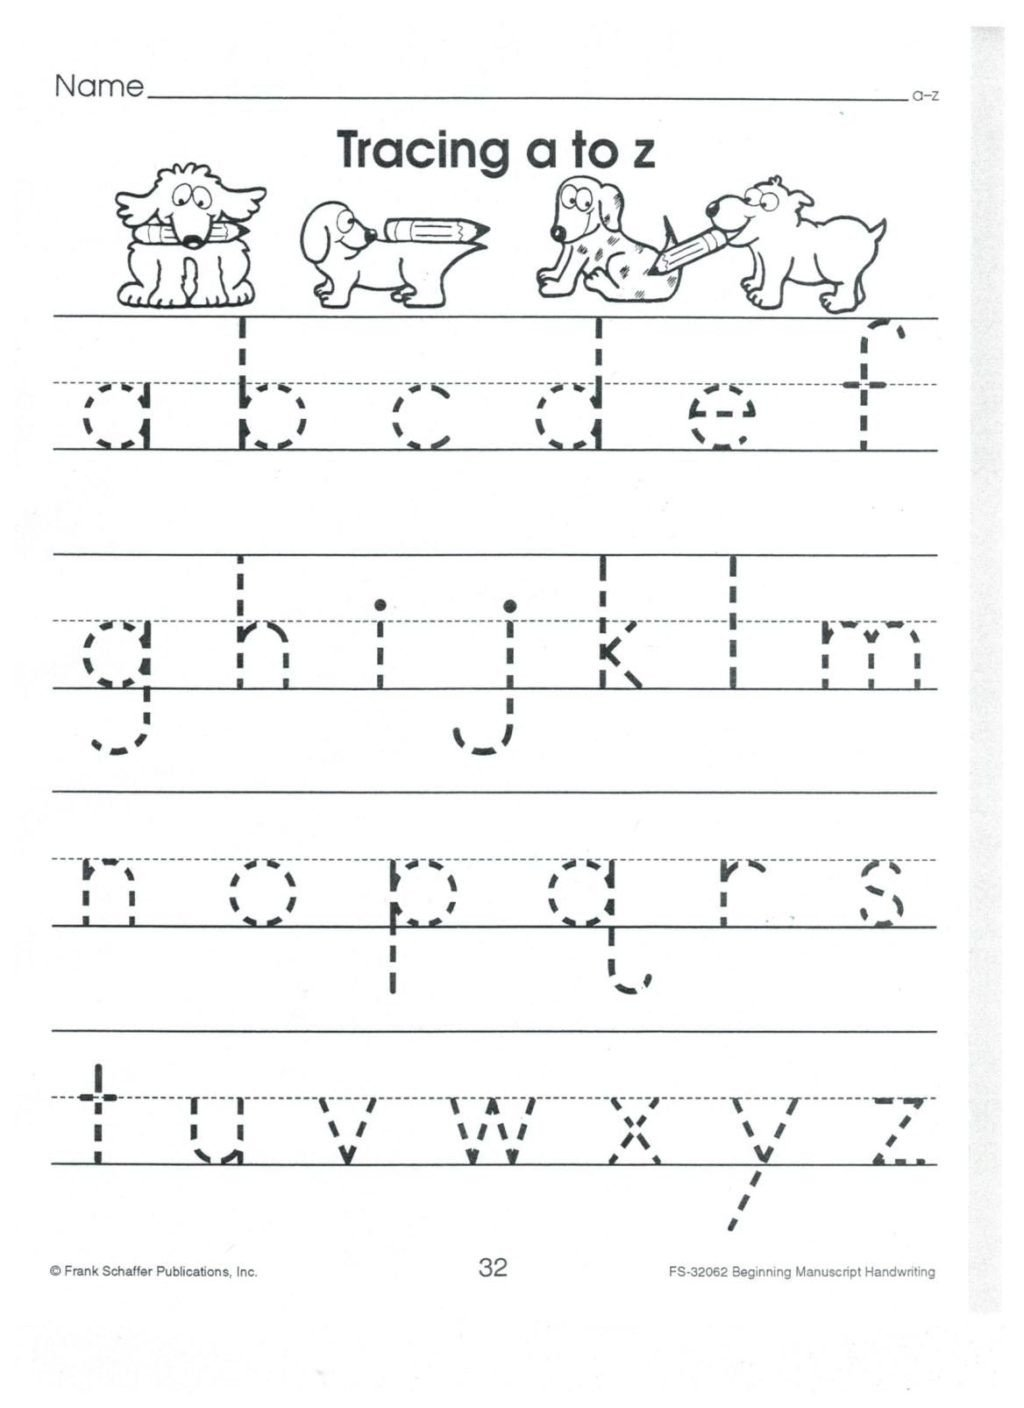 Lowercase Alphabet Tracing Worksheet Worksheet English Print to Z Lower Case Alphabet Tracing